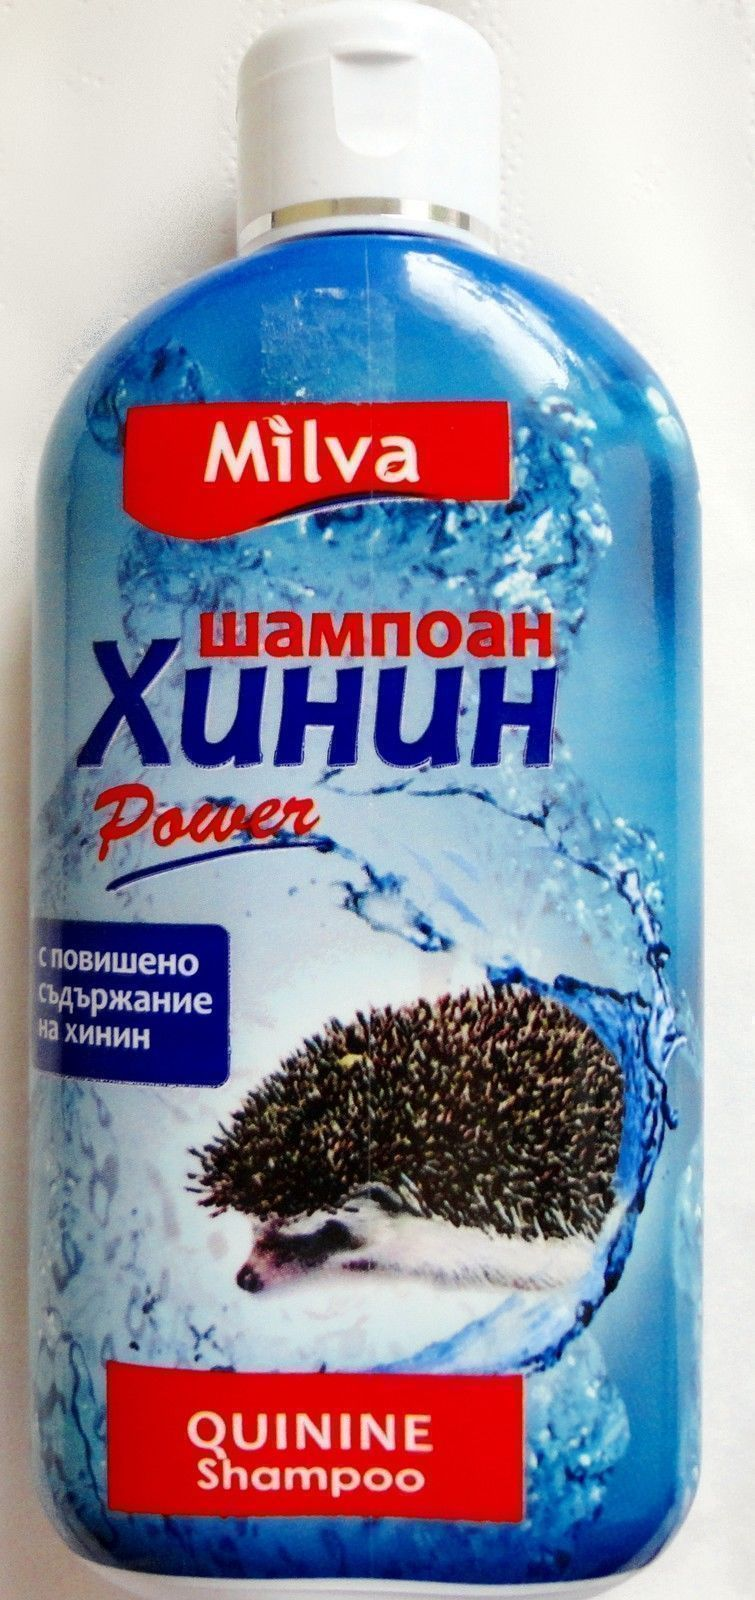 Milva HAIR SHAMPOO 200ml QUININE POWER High Grade Extract Hair Growth Booster